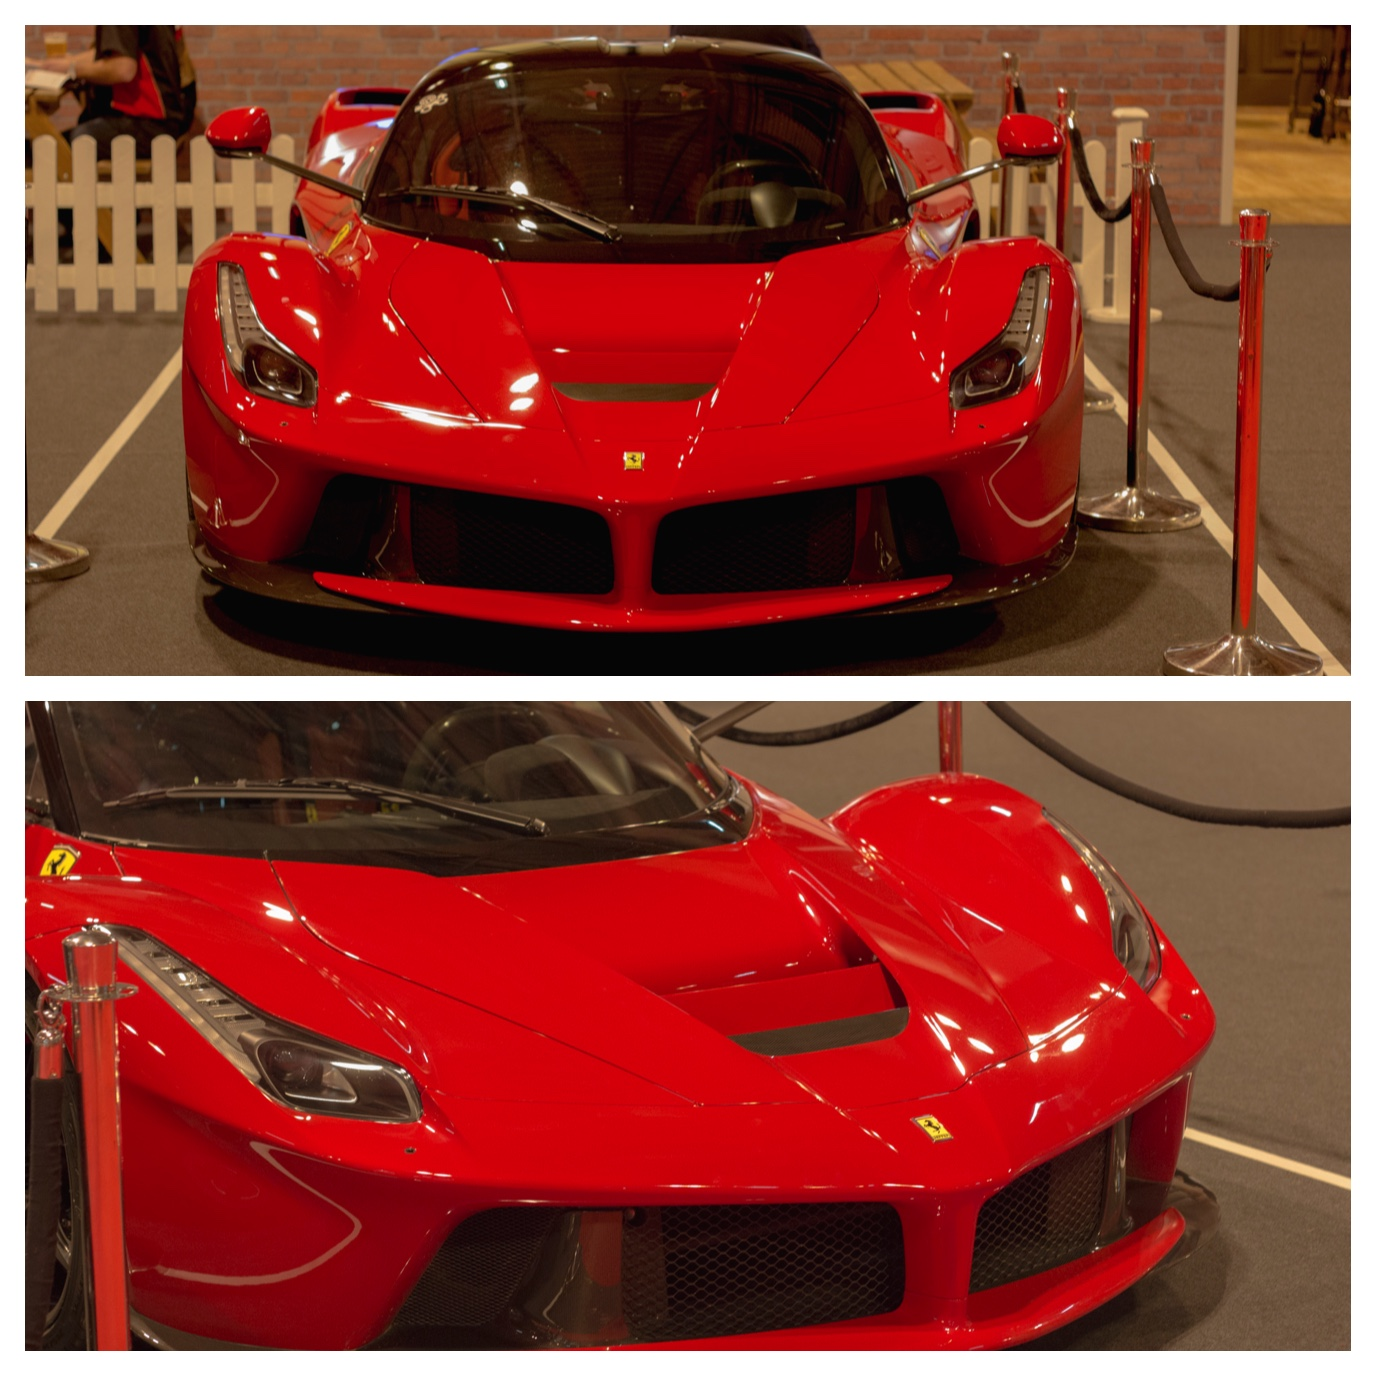 Ferrari LaFerrari at Autosport International 2015